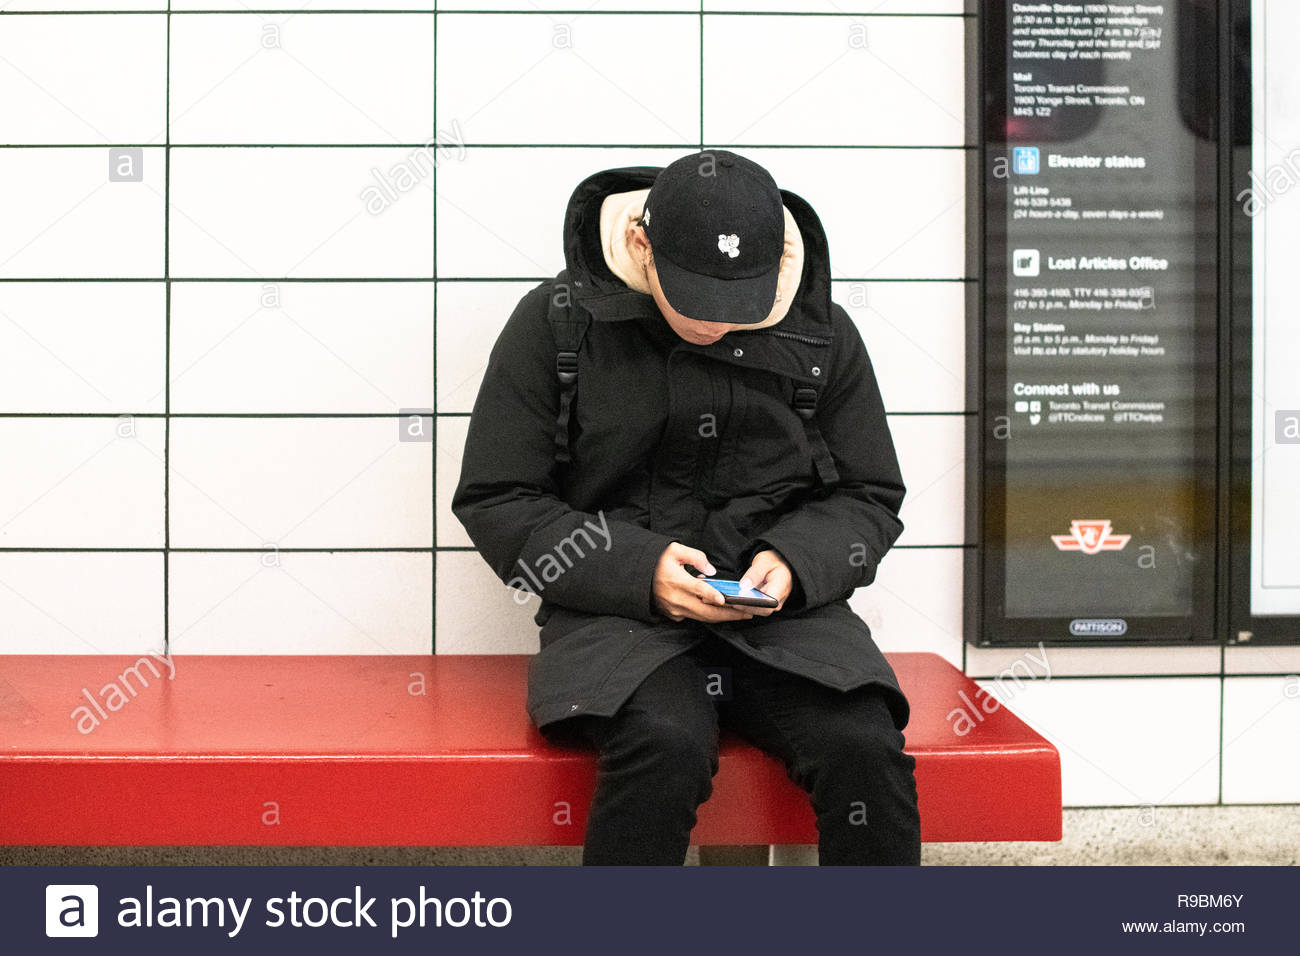 The technology attachment.  A young man browses his smartphone in a subway station. Most TTC stations have wifi already. City life and real people lif - Stock Image